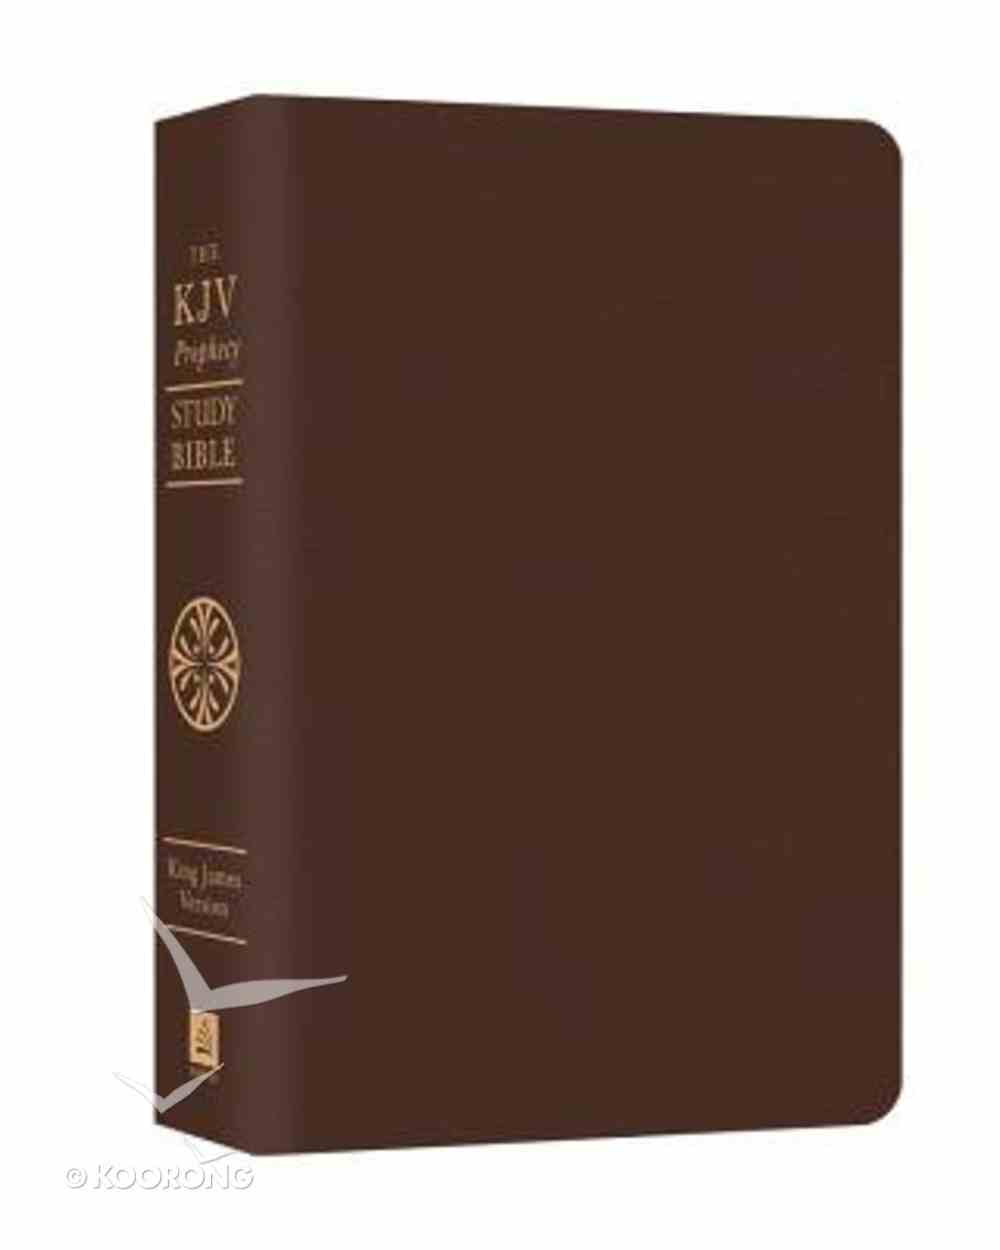 KJV Prophecy Study Bible Brown Bonded Leather